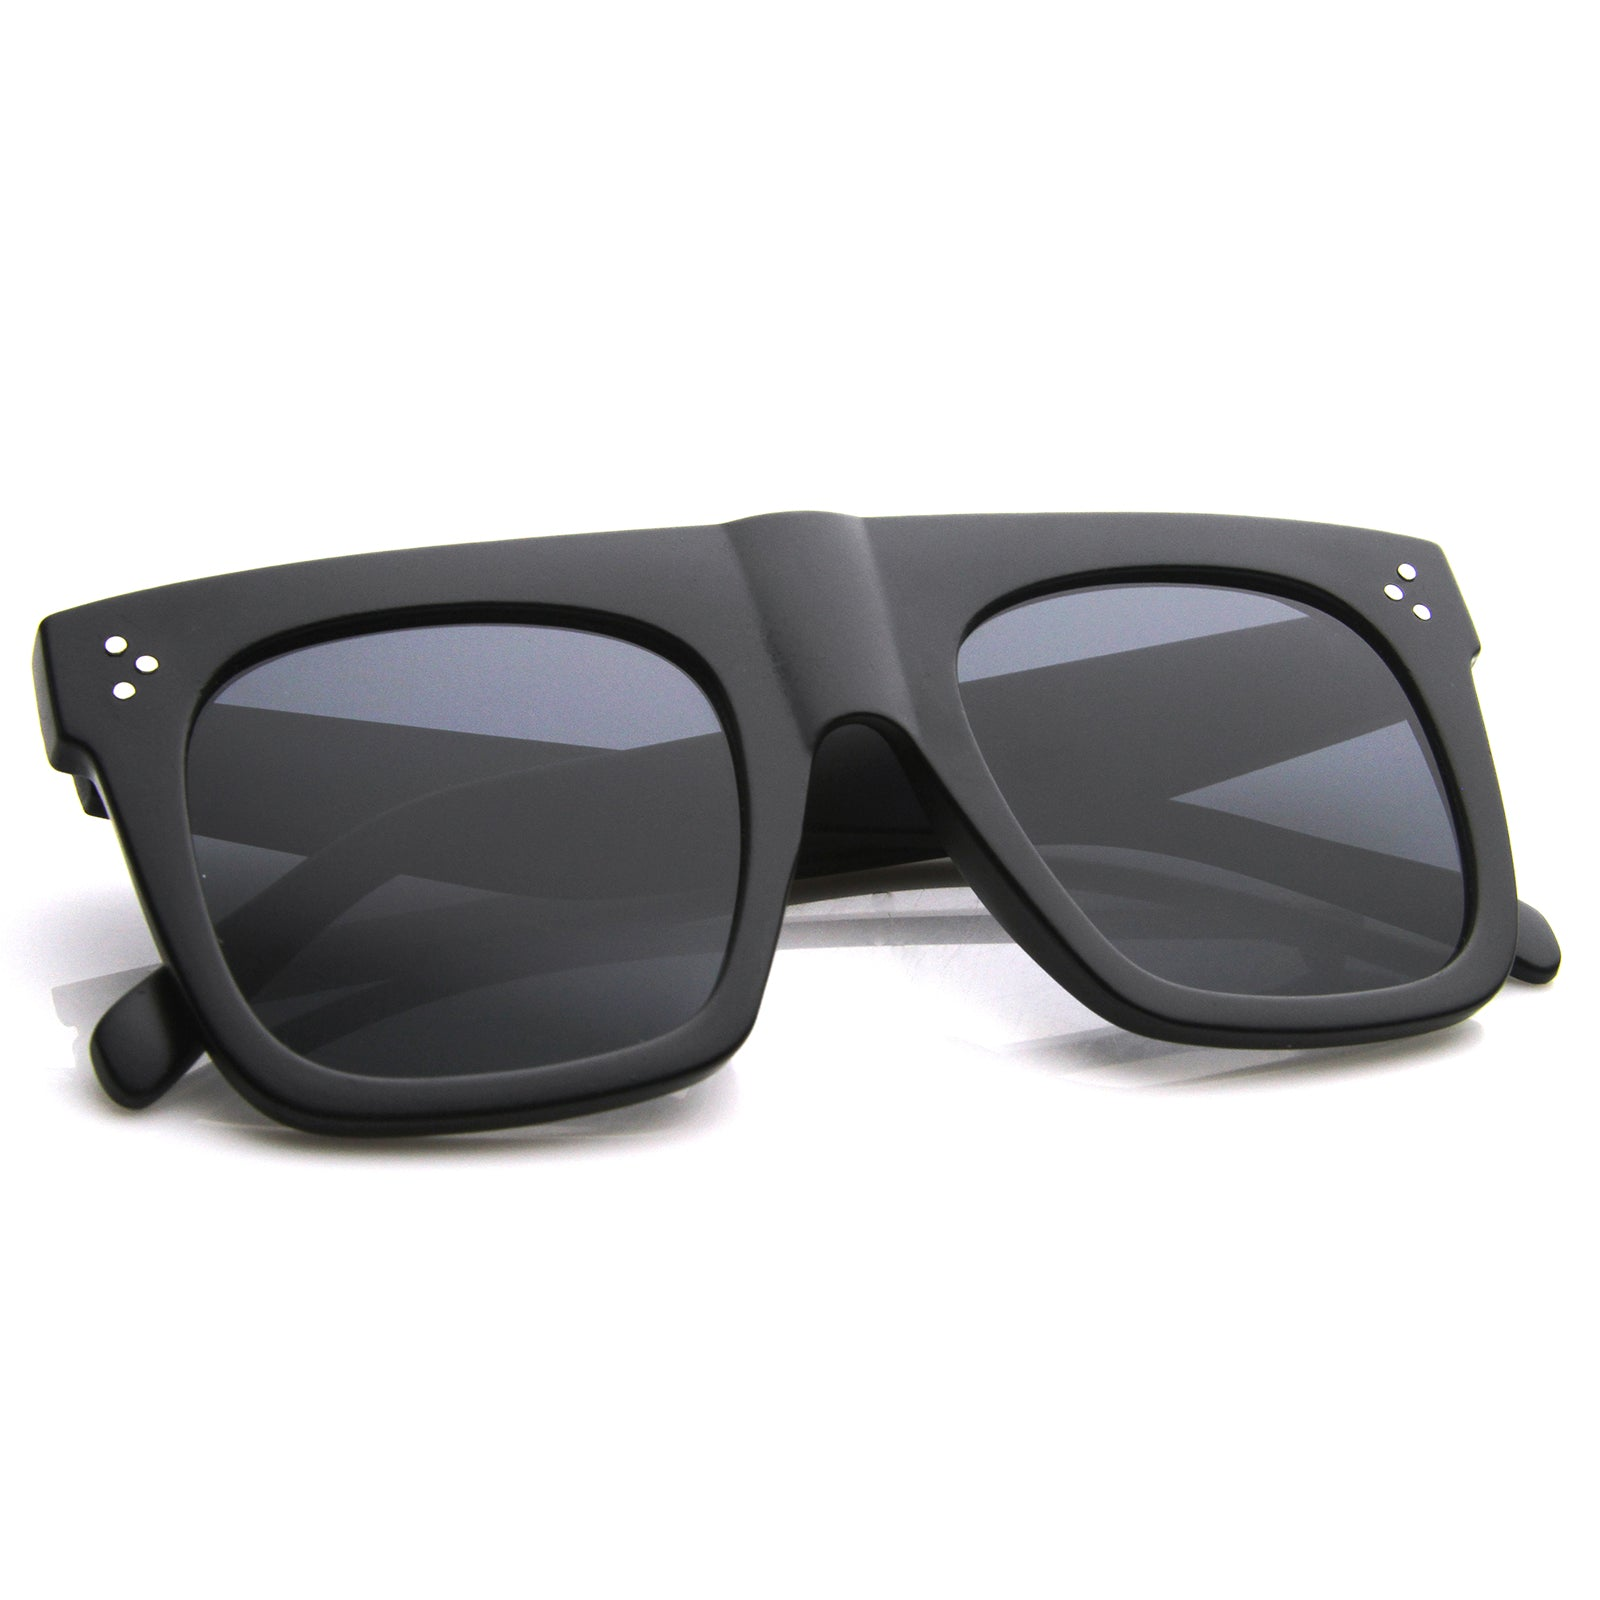 Modern Fashion Bold Flat Top Square Horn Rimmed Sunglasses 50mm - sunglass.la - 8